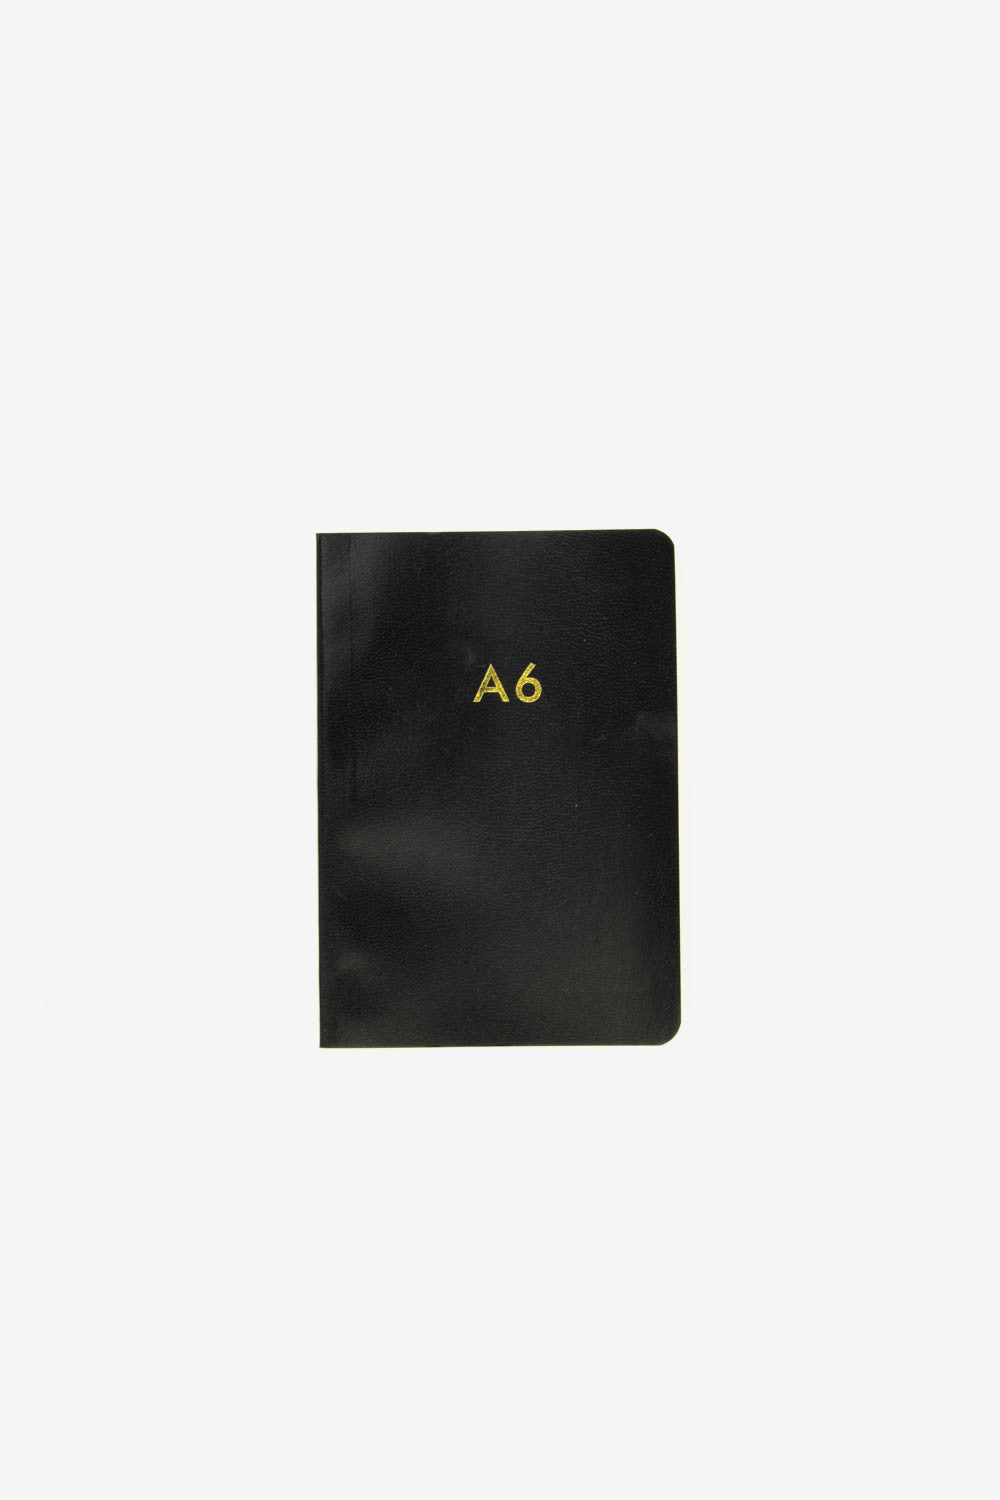 PUEBCO Regular A6 Note Yellow, Office, Puebco - Six and Sons